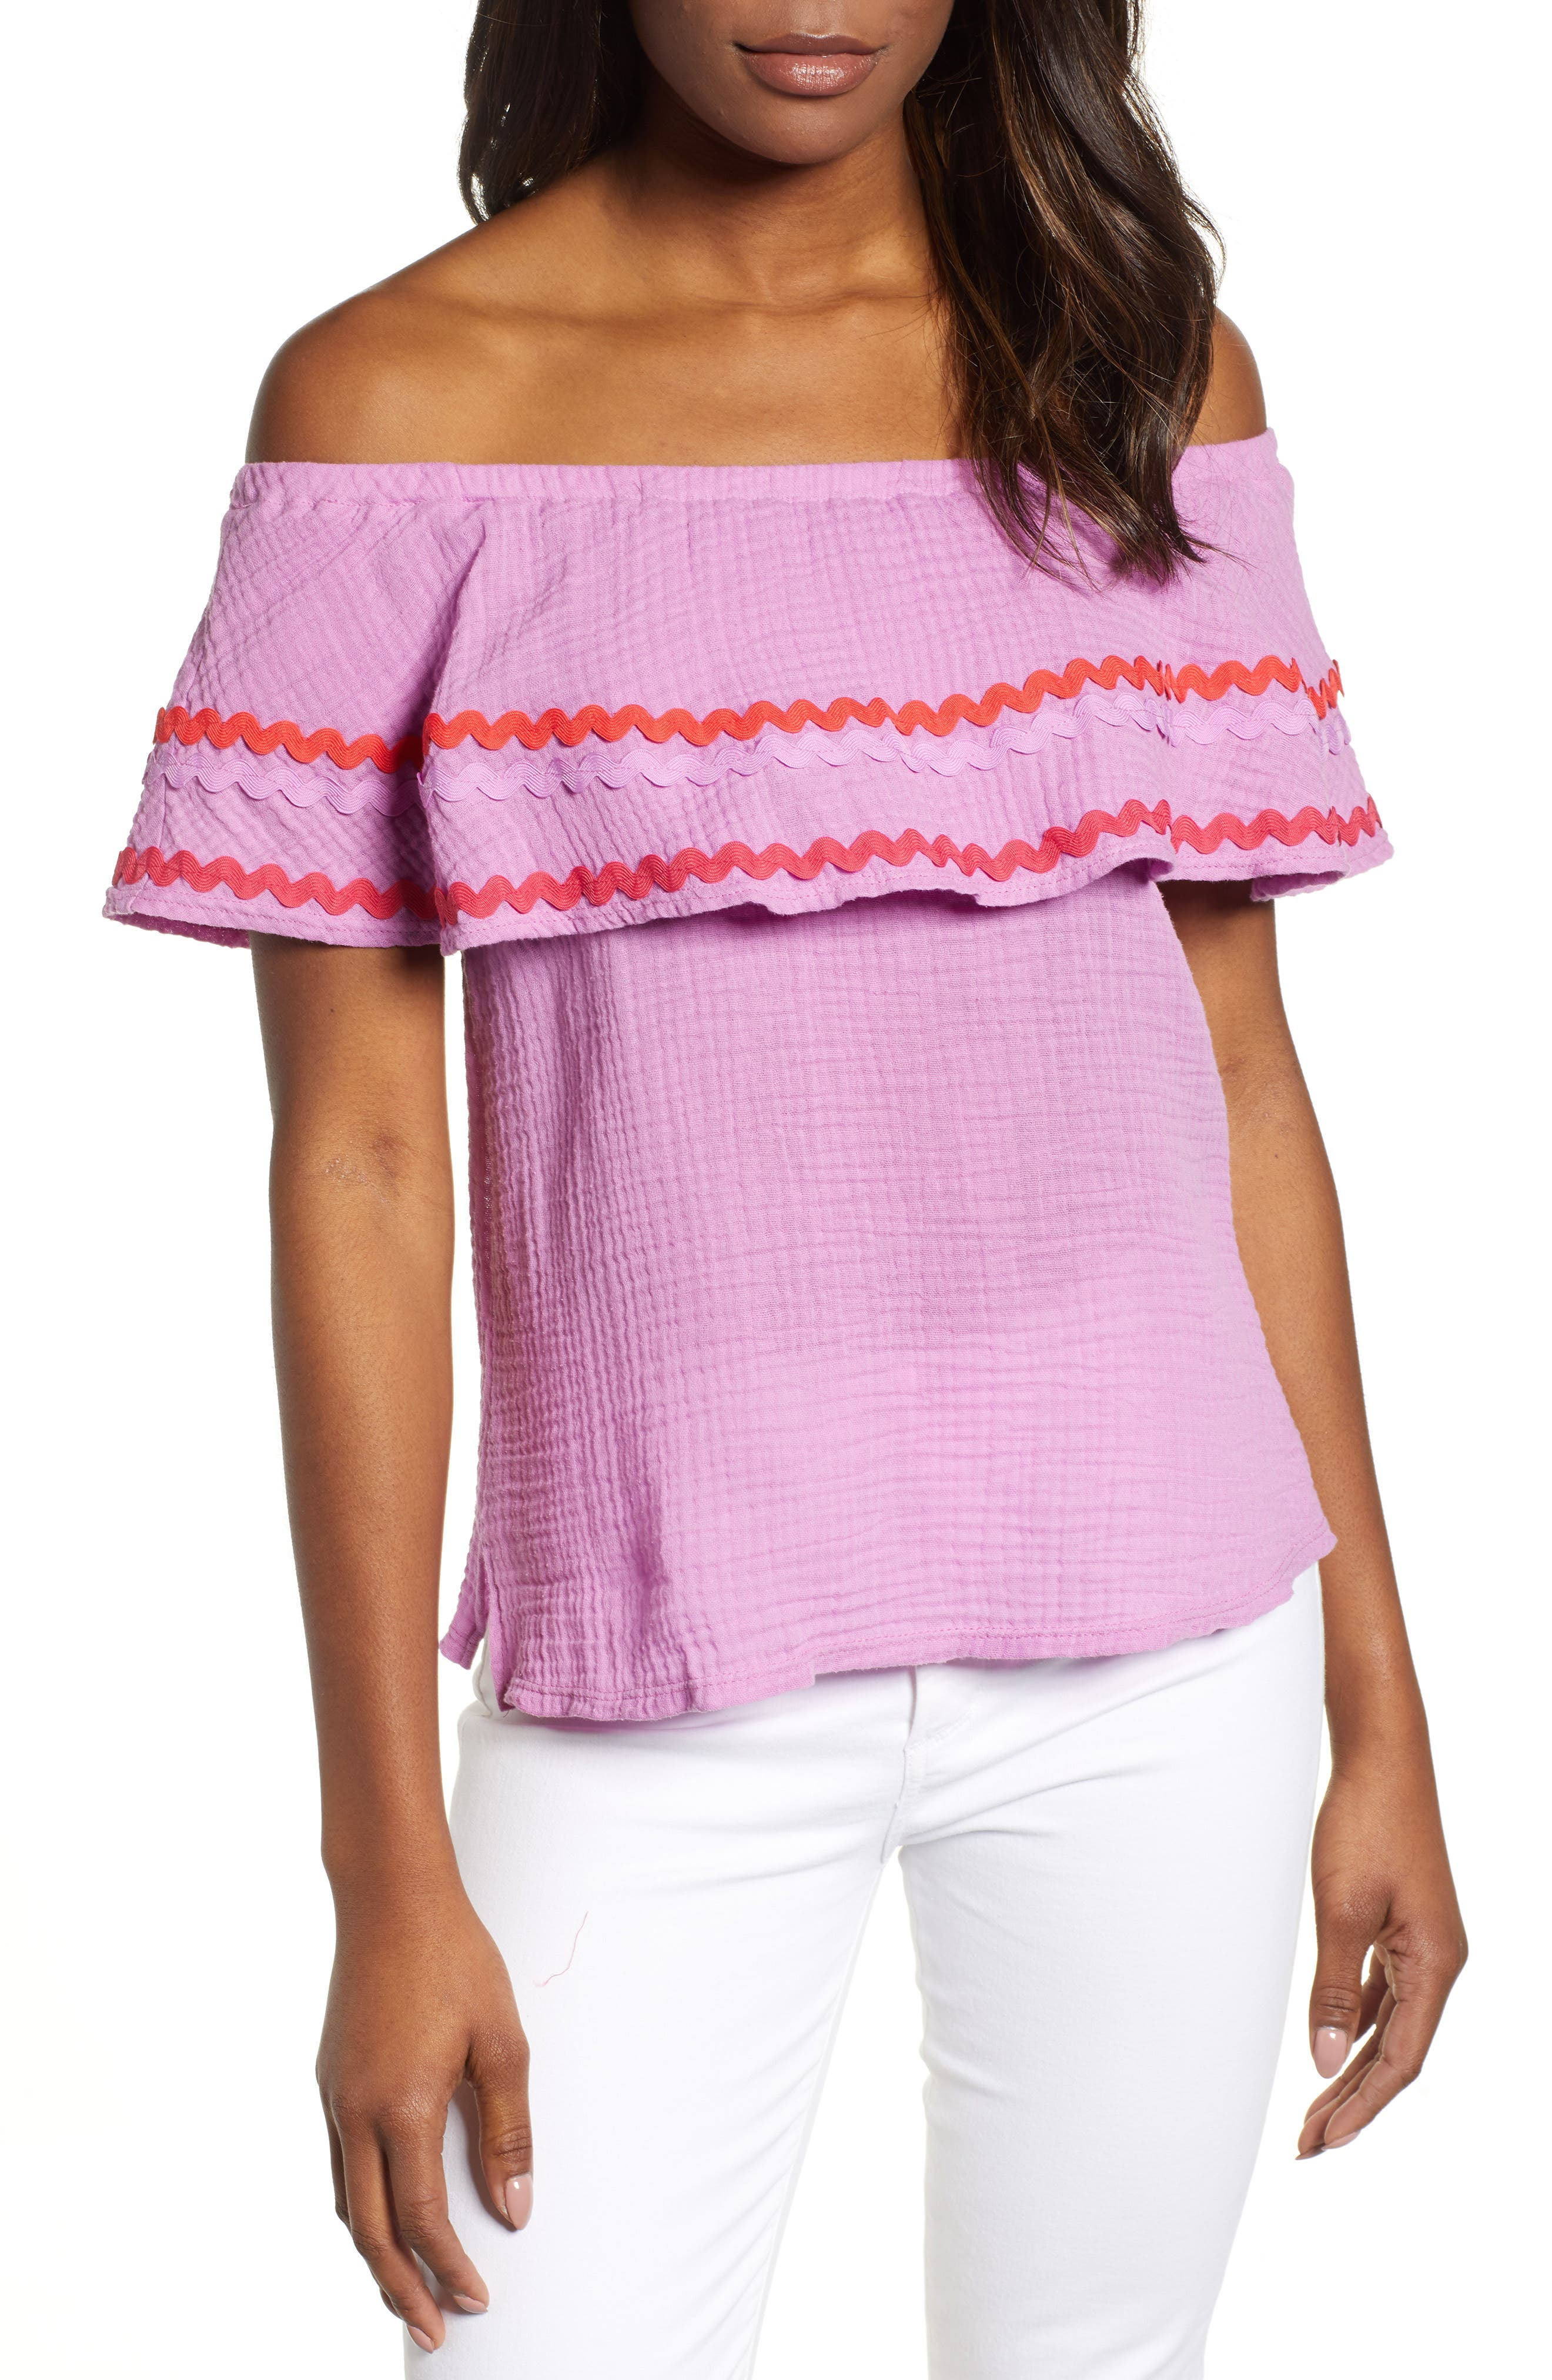 GIBSON, x Hi Sugarplum! Santa Fe Rickrack Off the Shoulder Top, Main thumbnail 1, color, PEONY